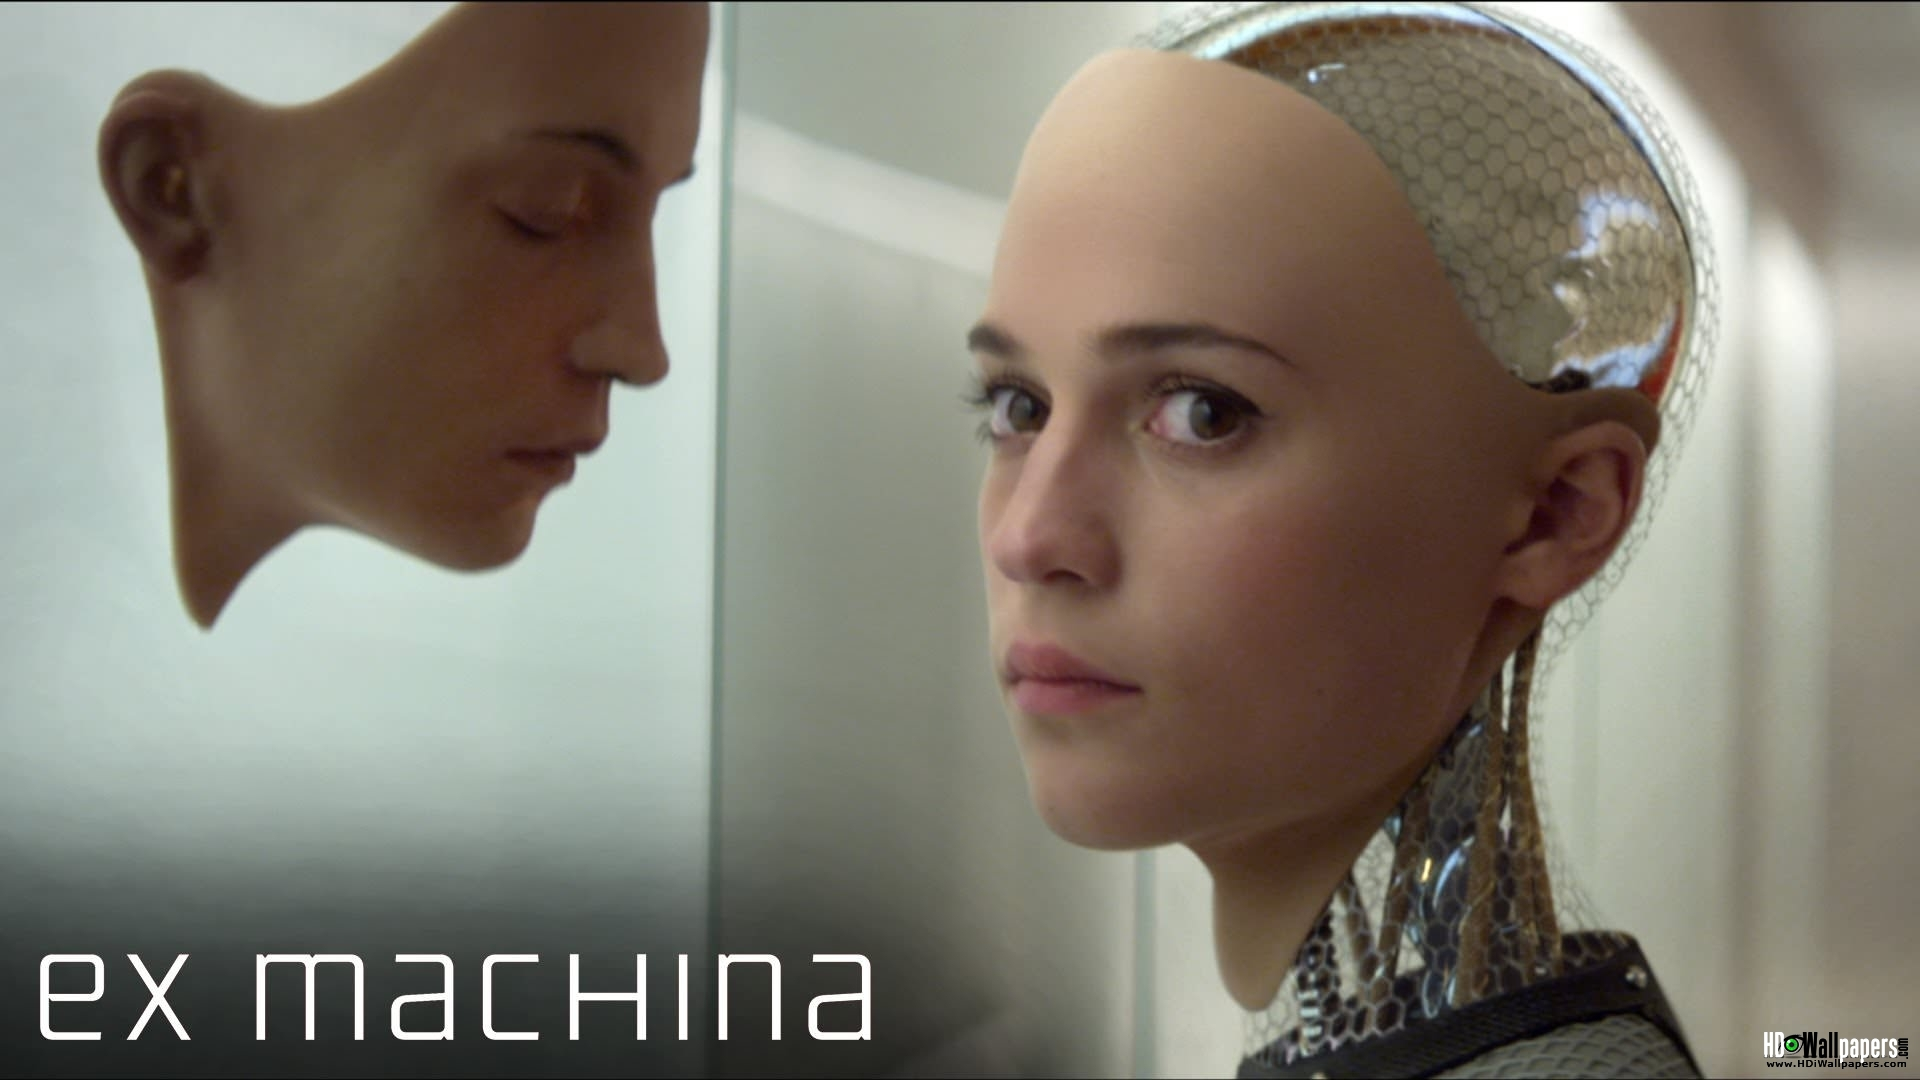 Ex Machina will awe viewers